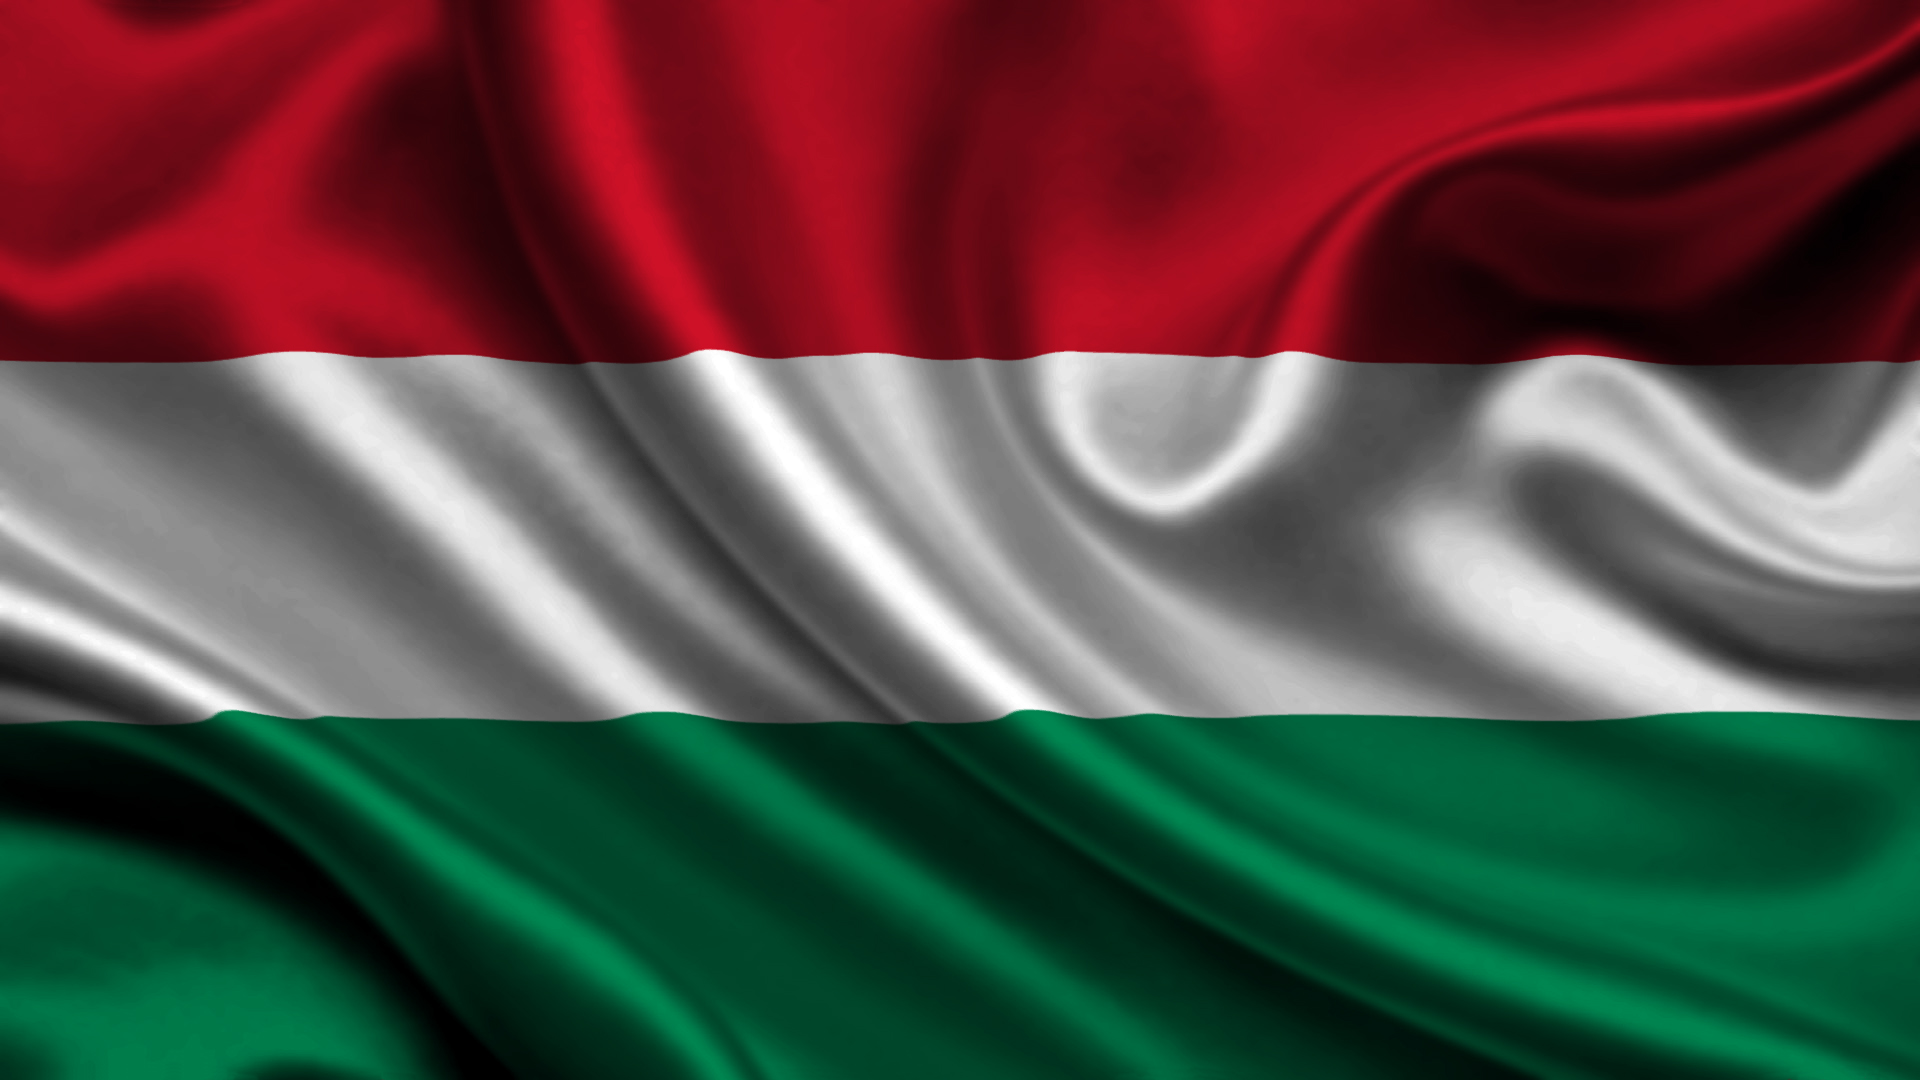 Hungary Flag colors Hungary Flag meaning history